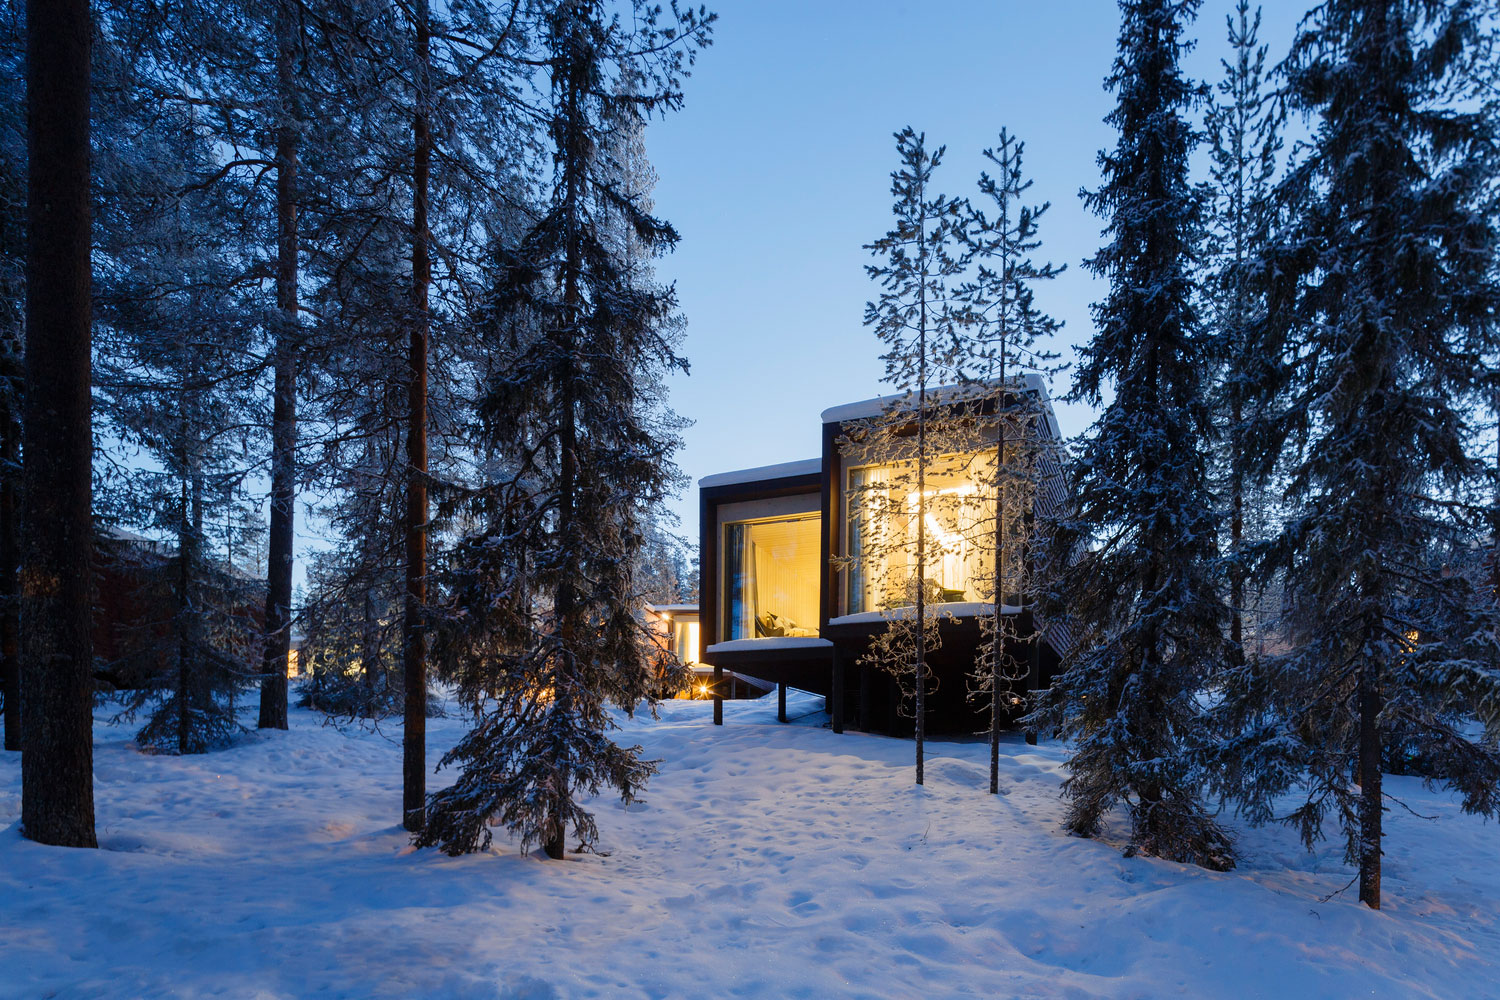 Studio Puisto Have Designed A Stunning And Incredibly